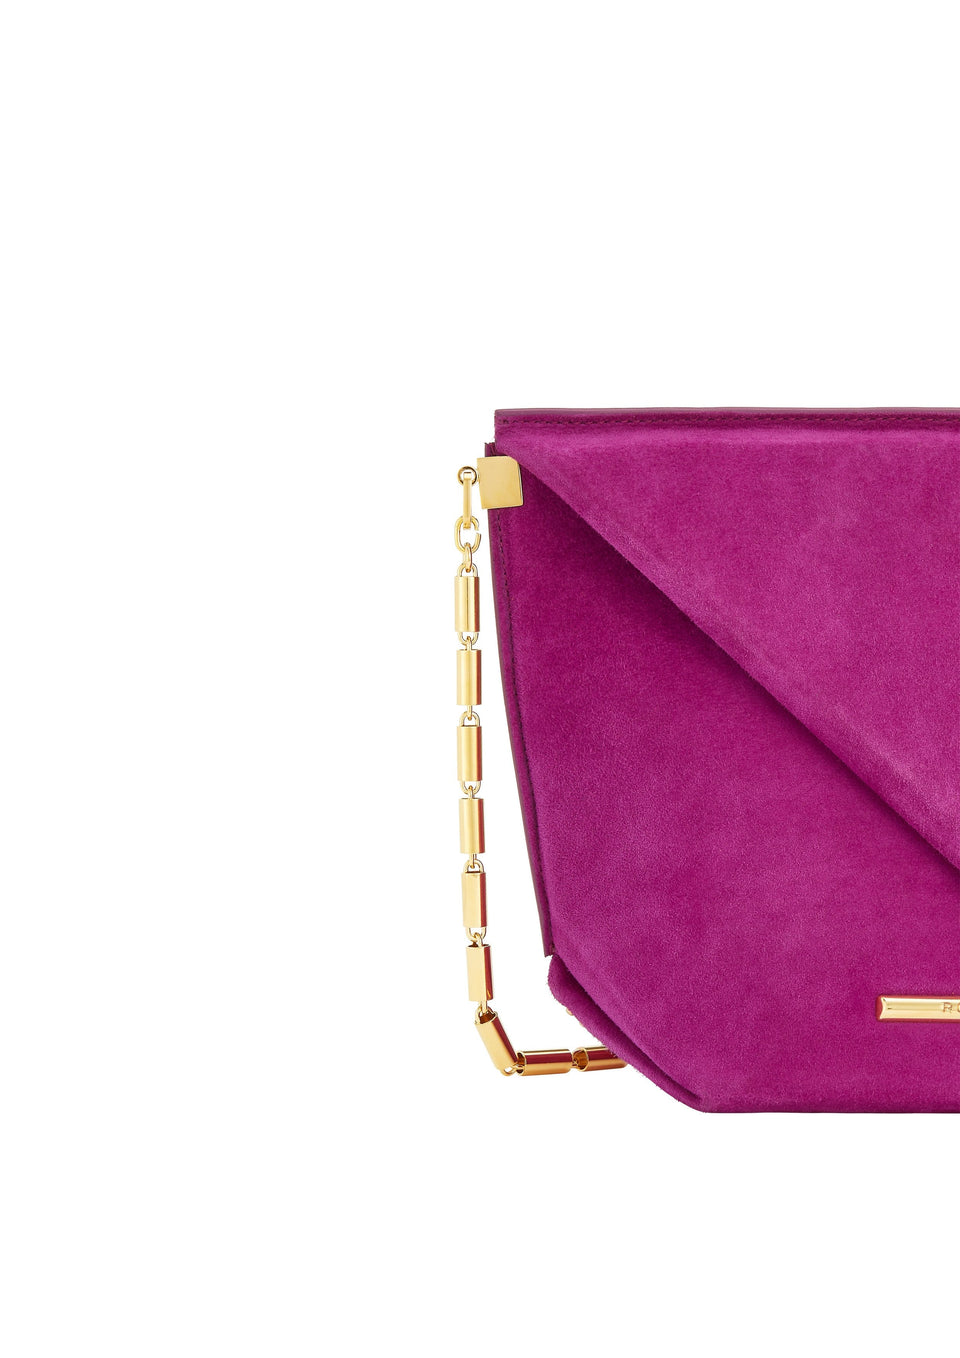 Classico Bag In Cerise from Roland Mouret